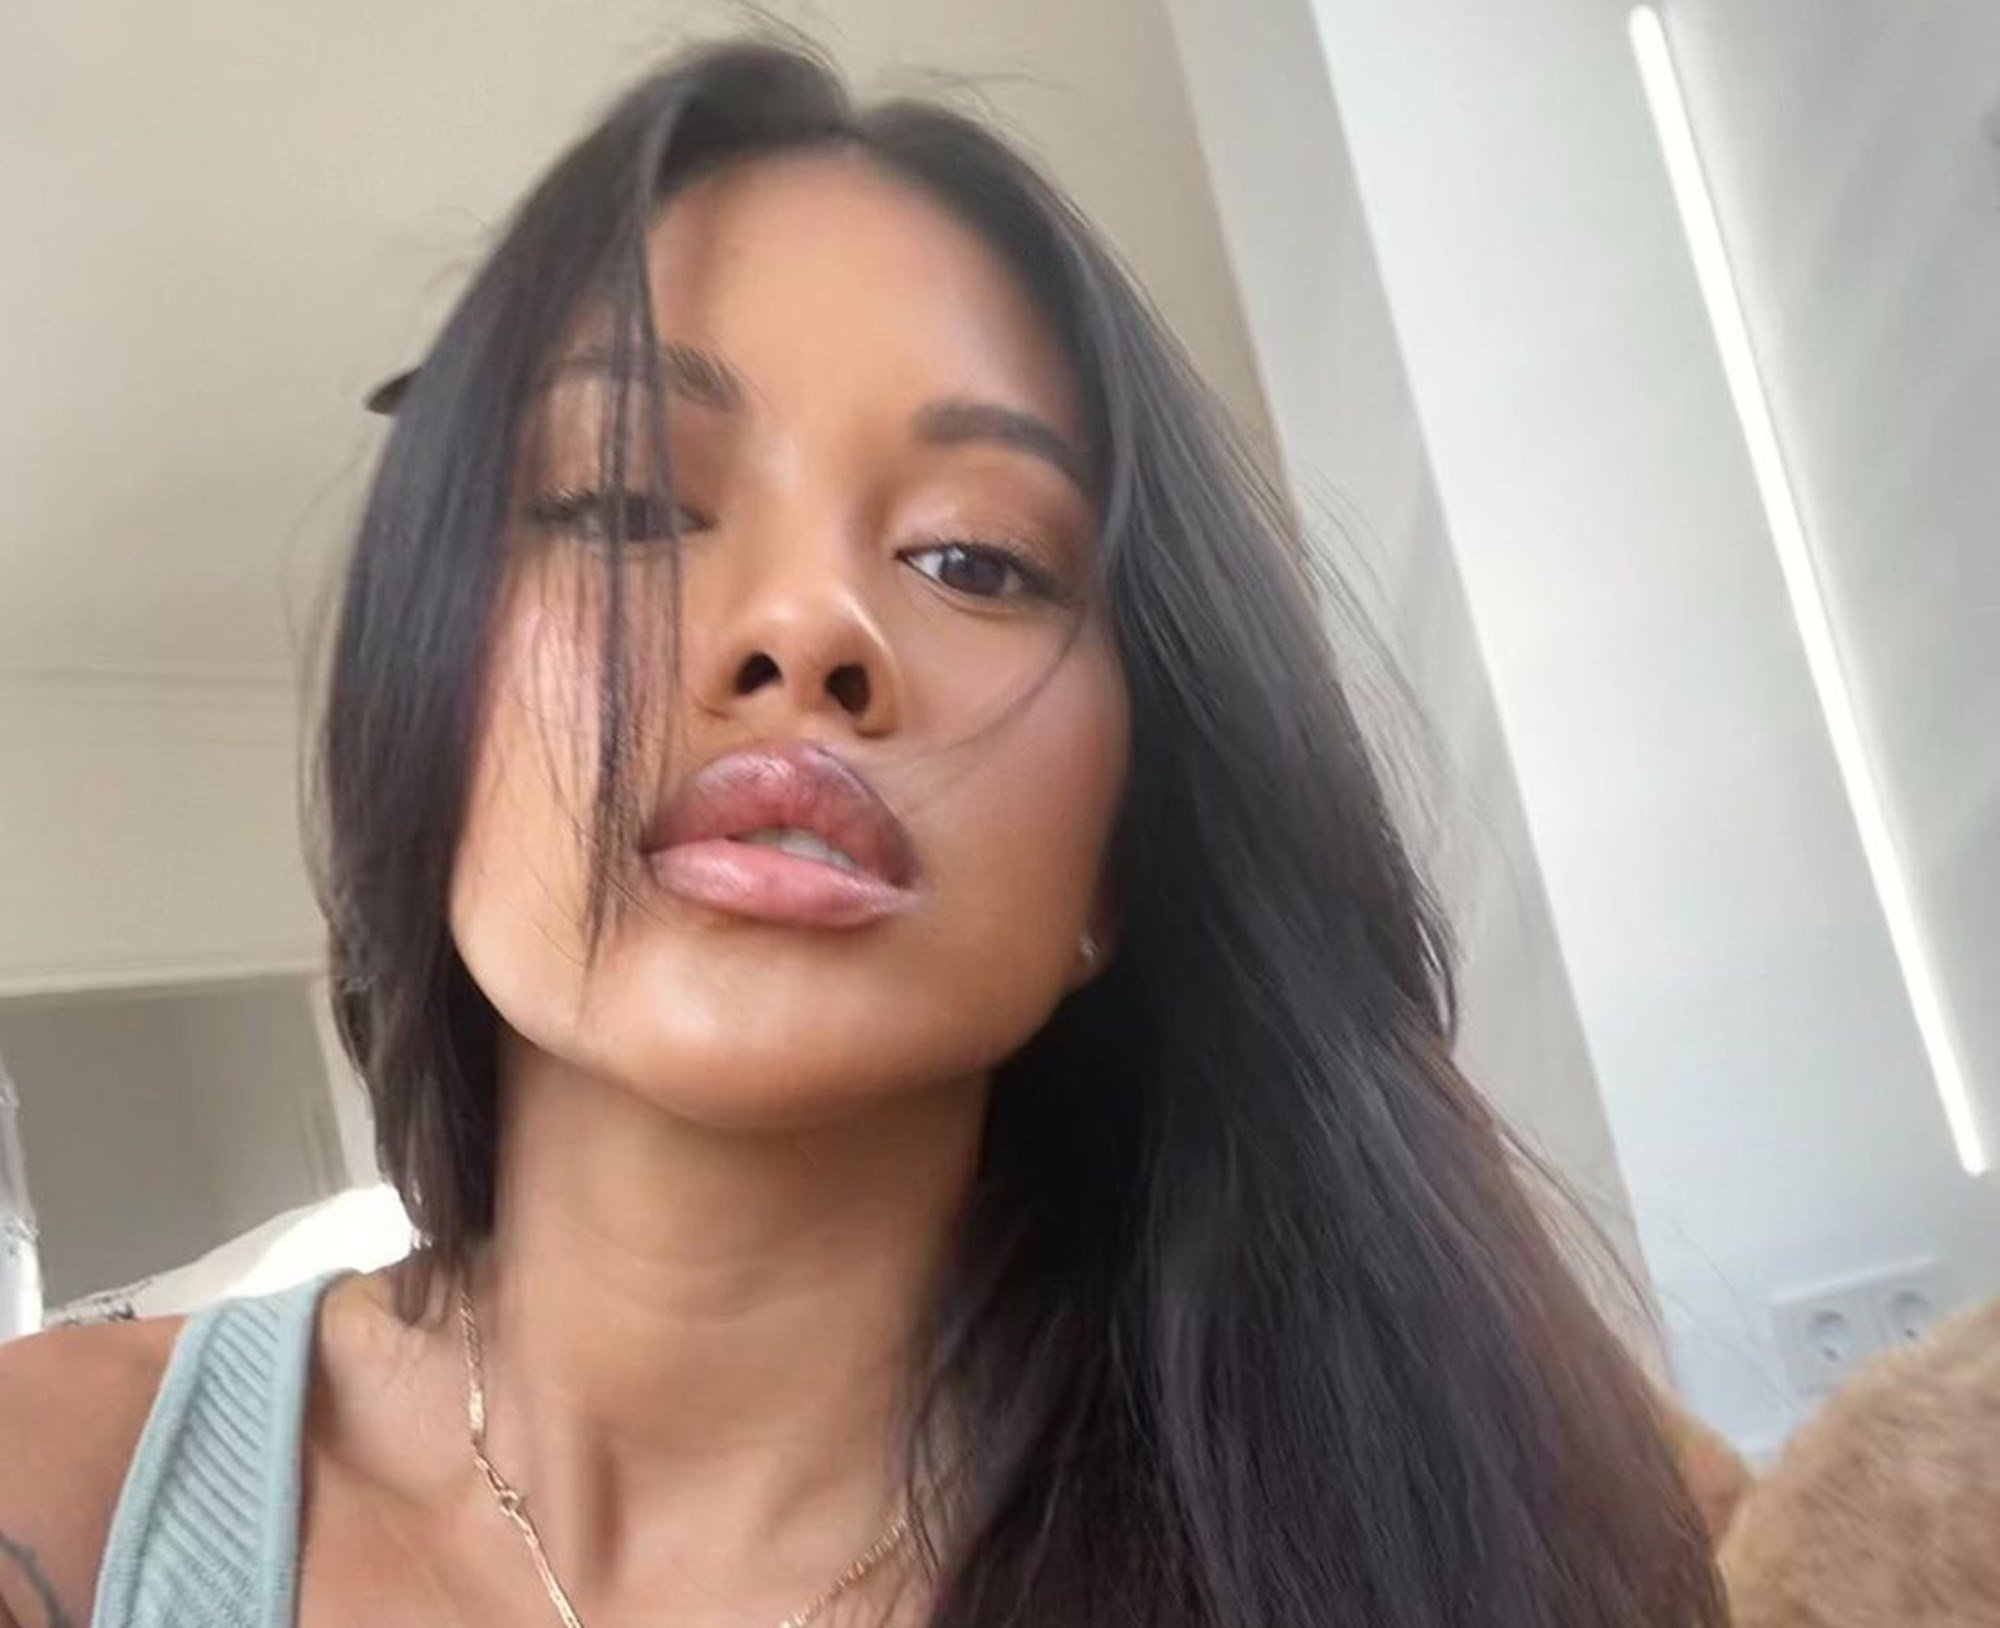 Chris Brown's Baby Mama, Ammika Harris, Reveals The Secret Behind Her Perfect Photos After Getting Some Good News Involving Rihanna